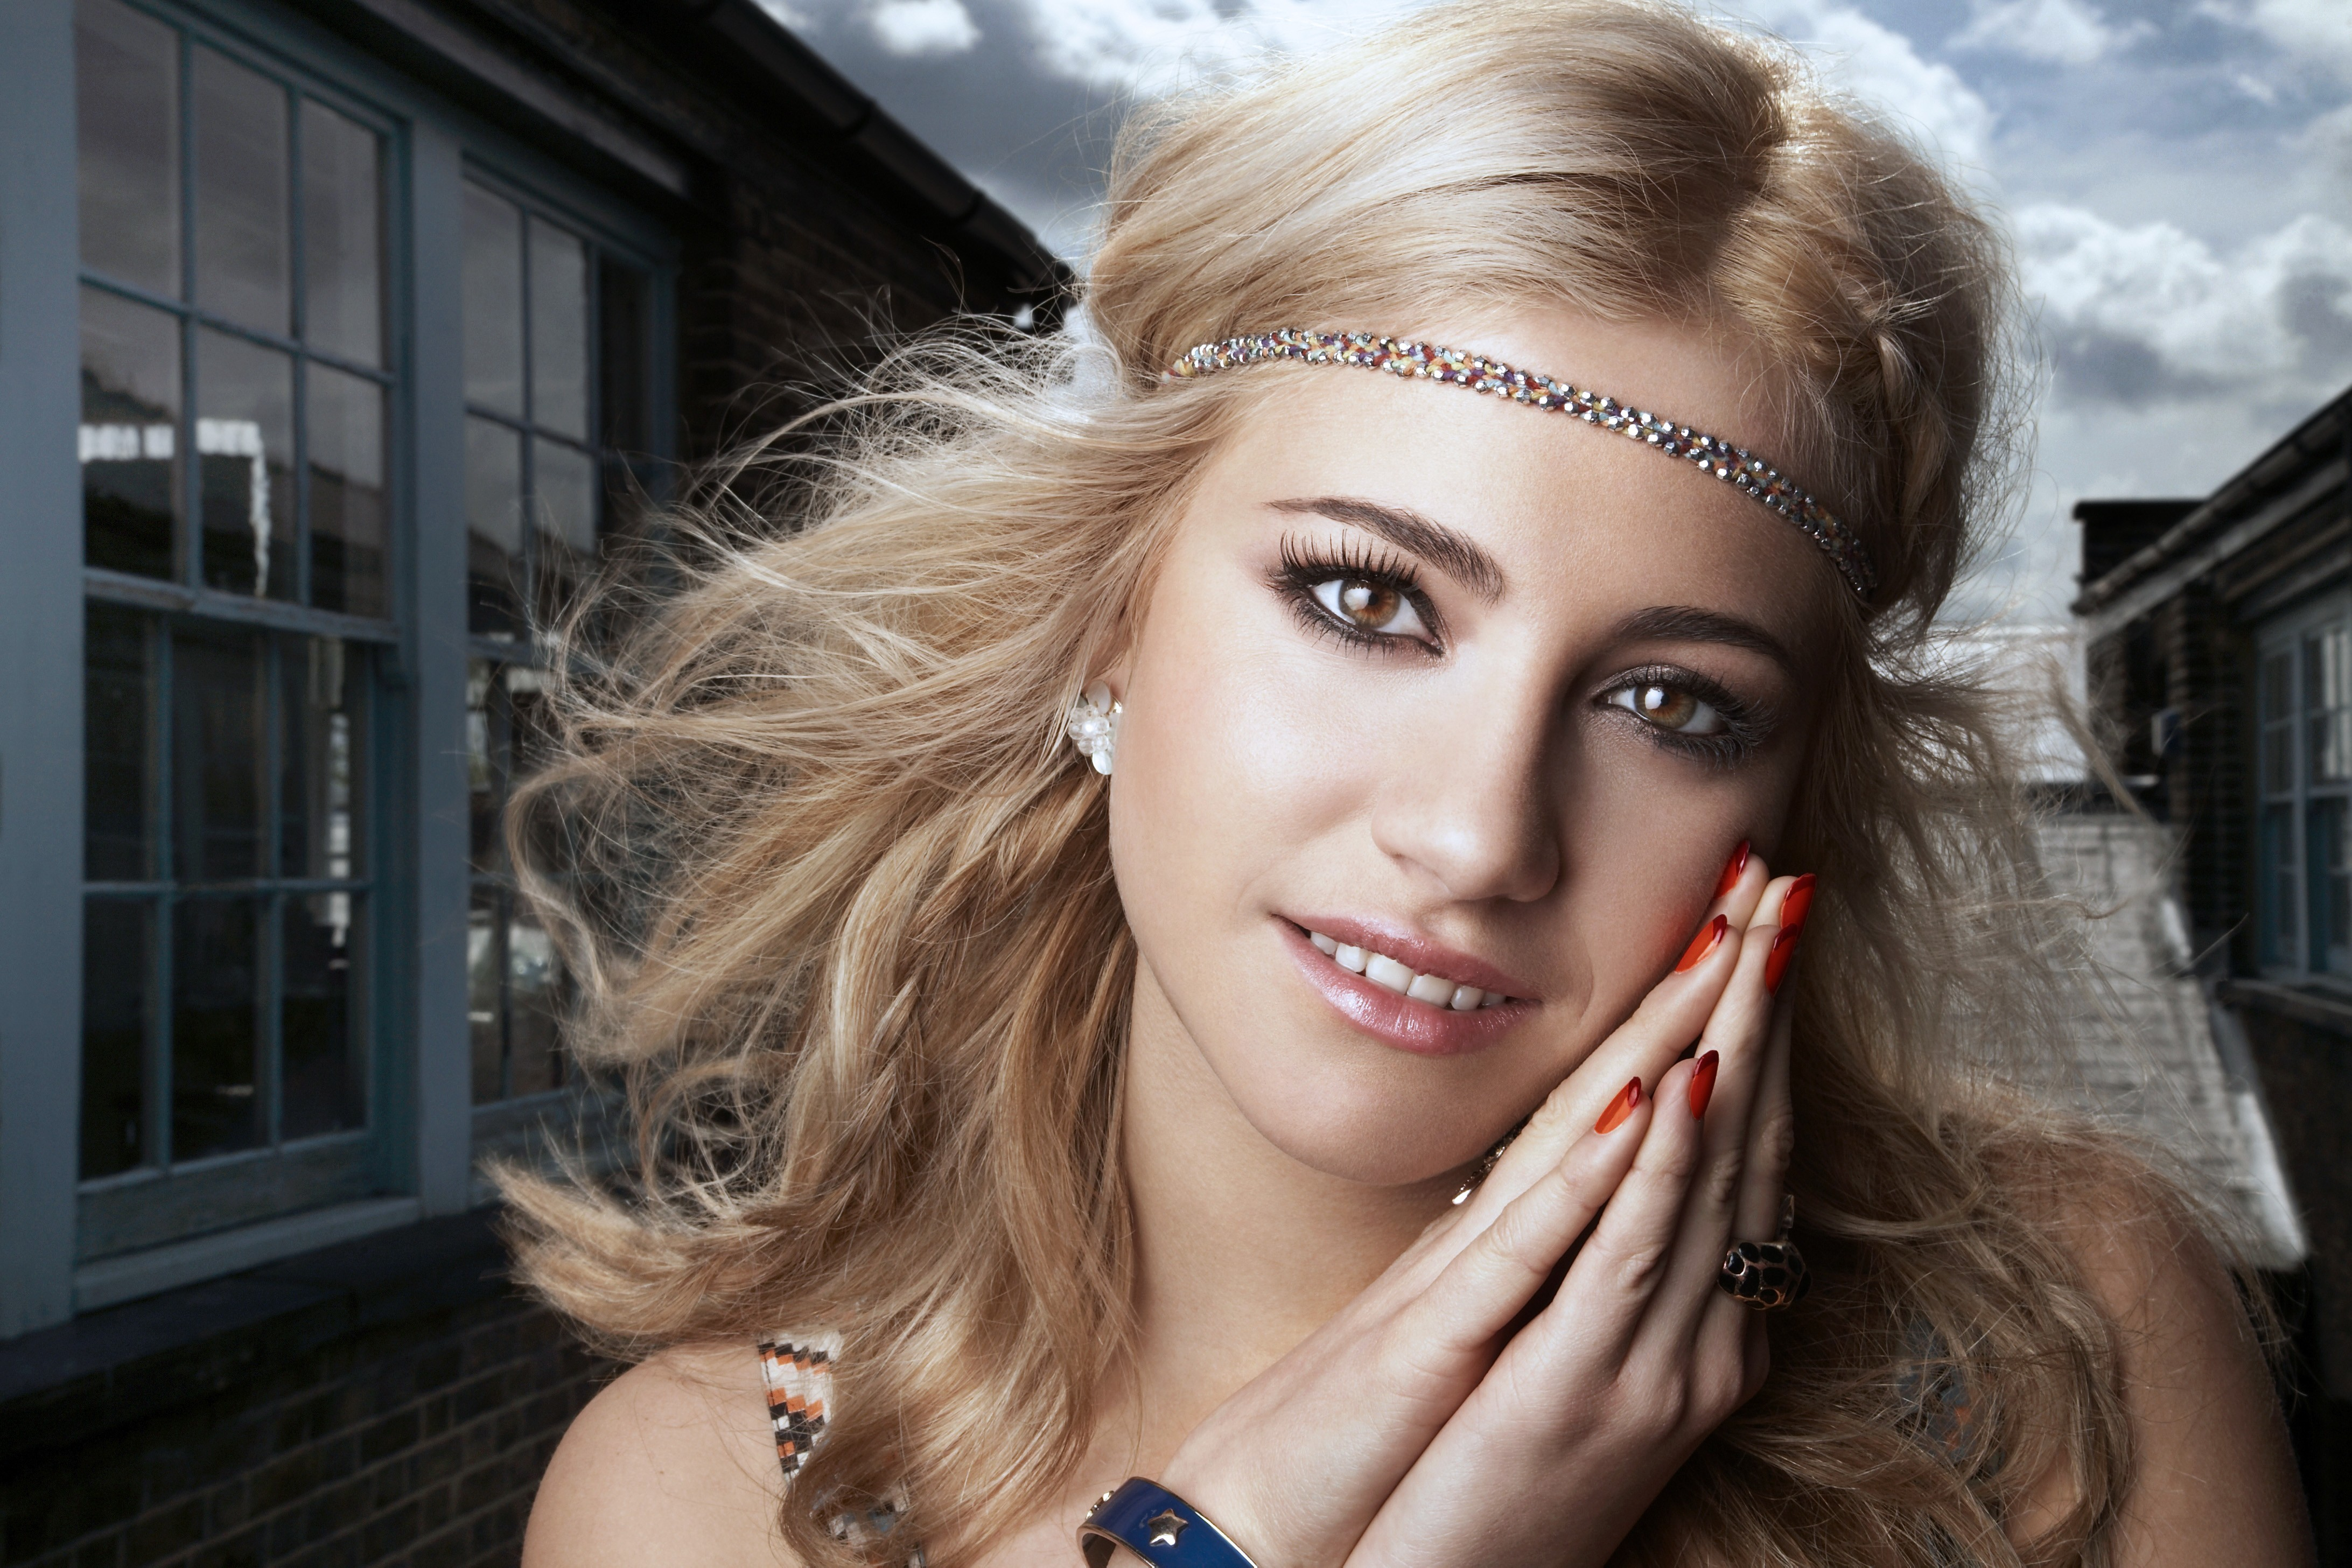 woman Music pixie lott HD Wallpaper